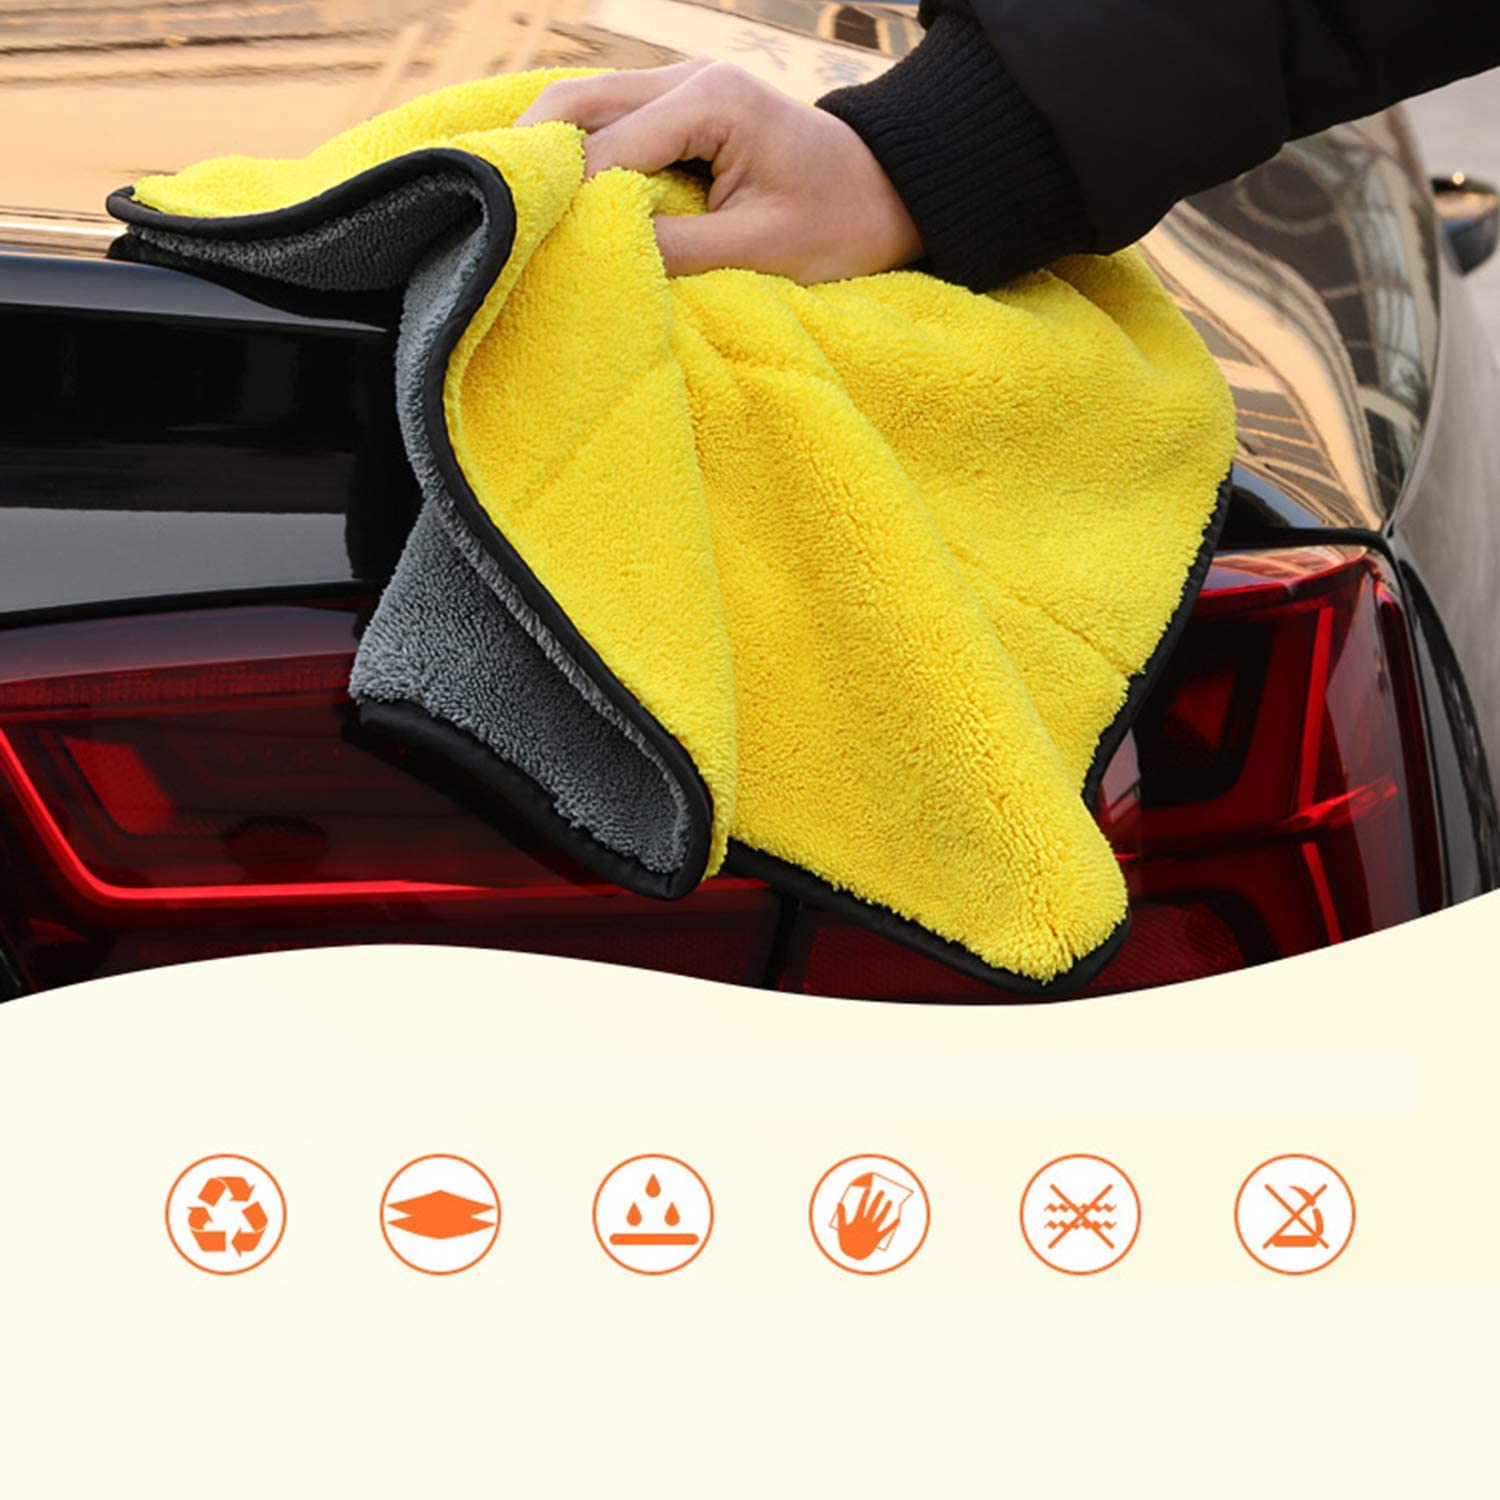 Super Absorbent Car Care Washing Tools Car Washing Microfiber Towel Cleaning Drying Cloth Detailing Towels